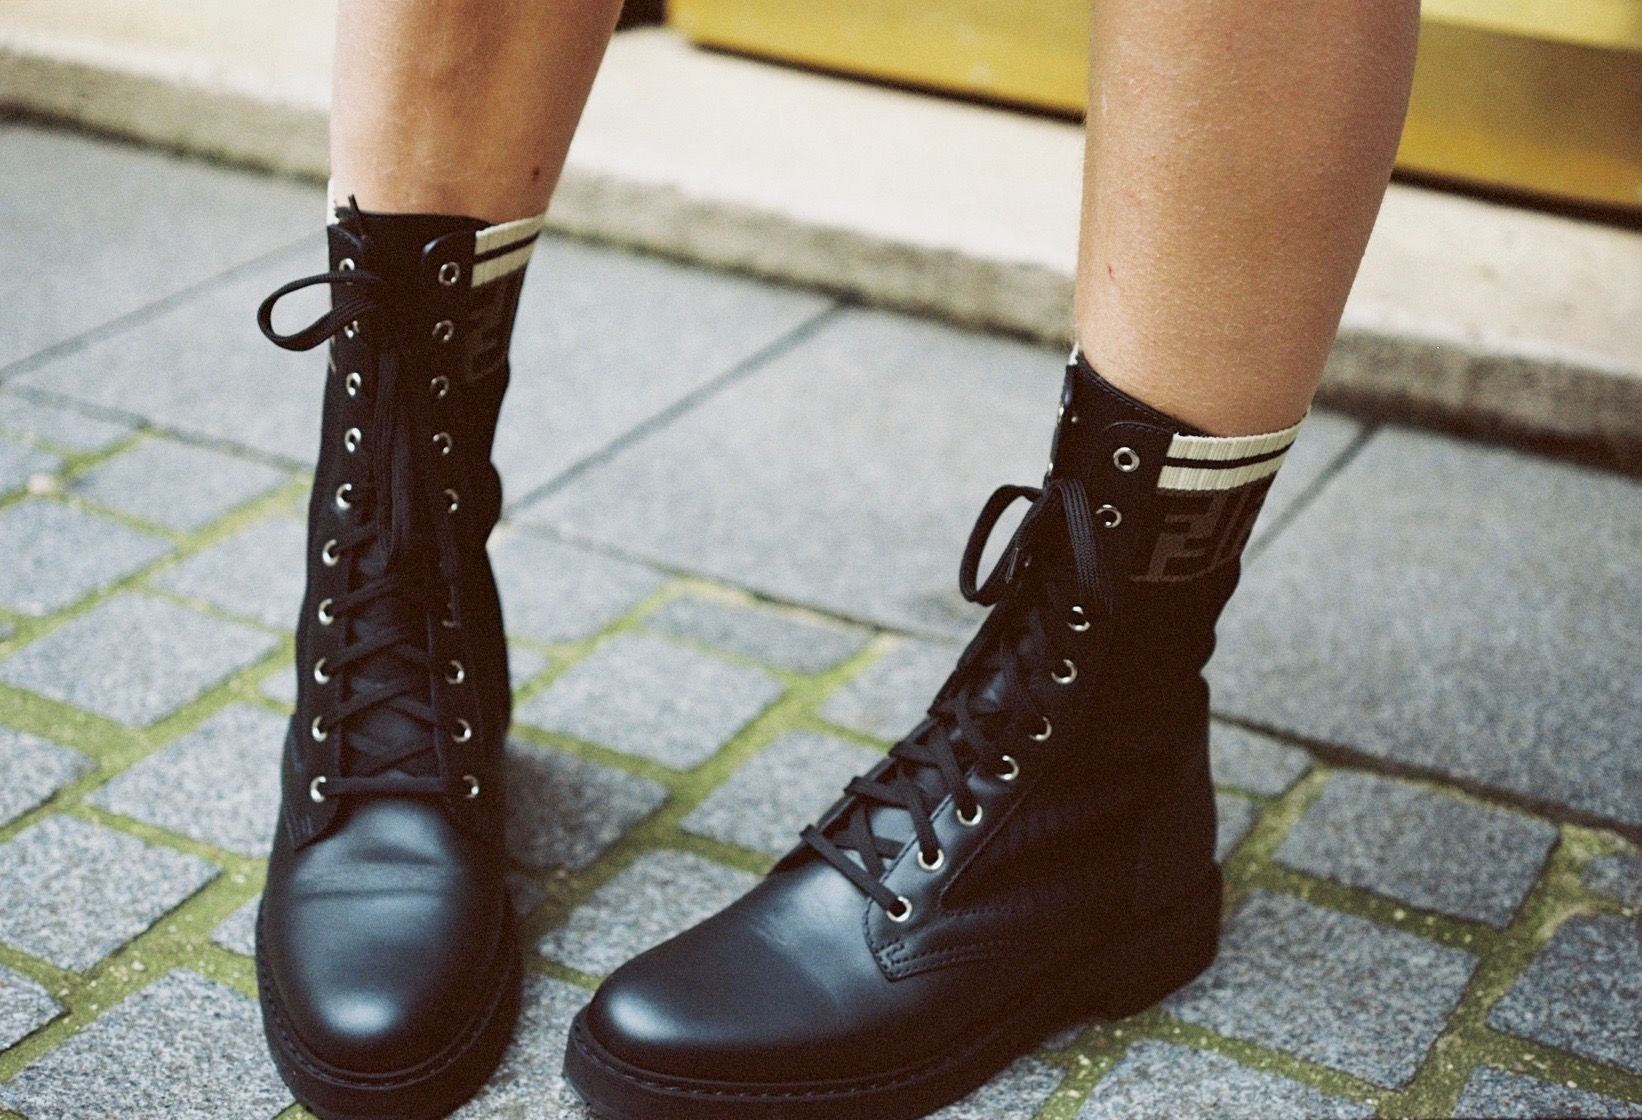 Fendi Ankle Boots in 2020 | Boots